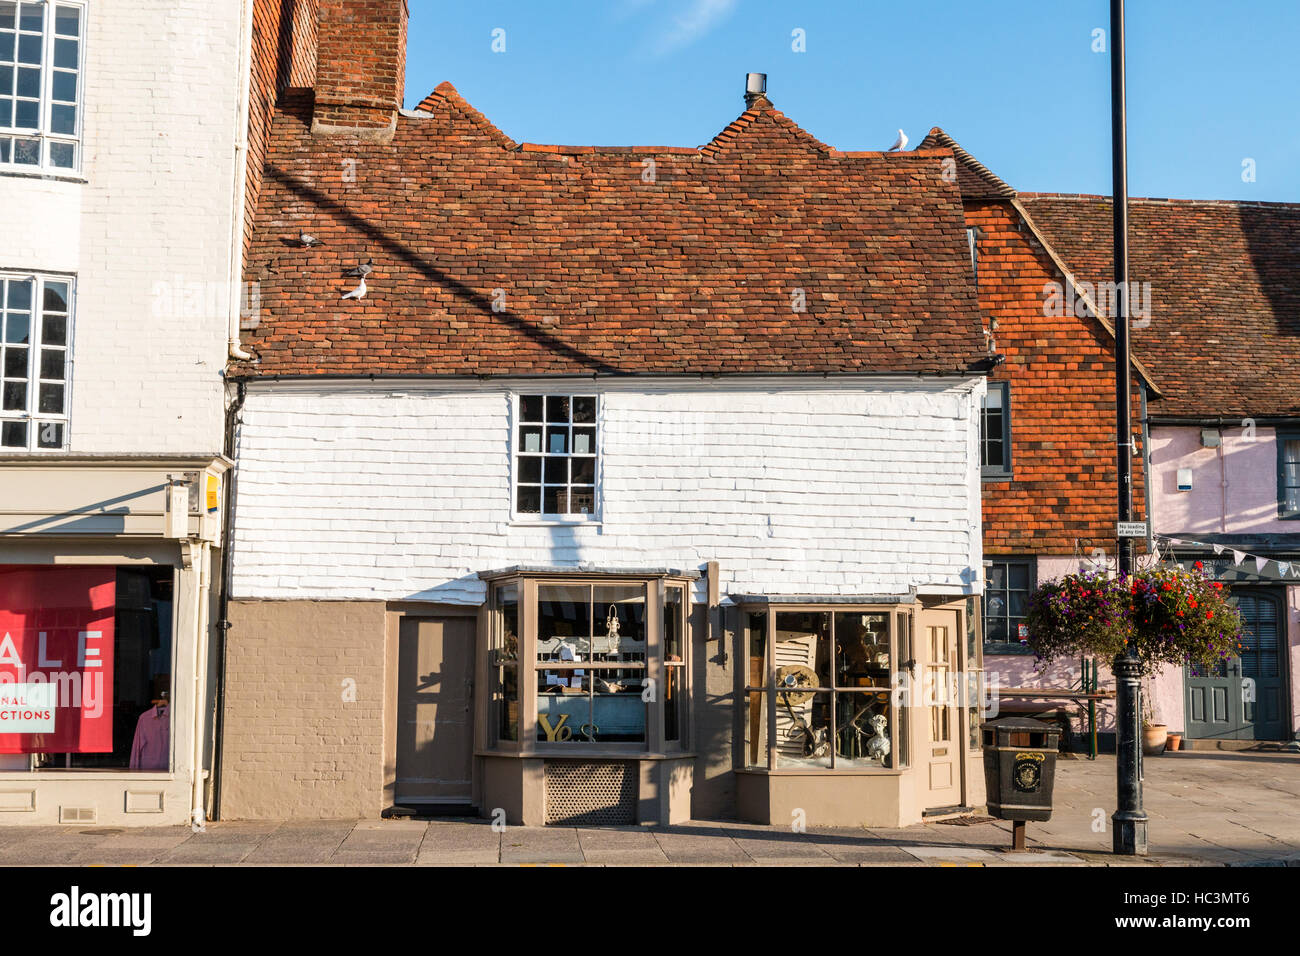 15th century two-storey, 'Rising Star' gift corner shop on High Street, Tenterden. One of many historical - Stock Image